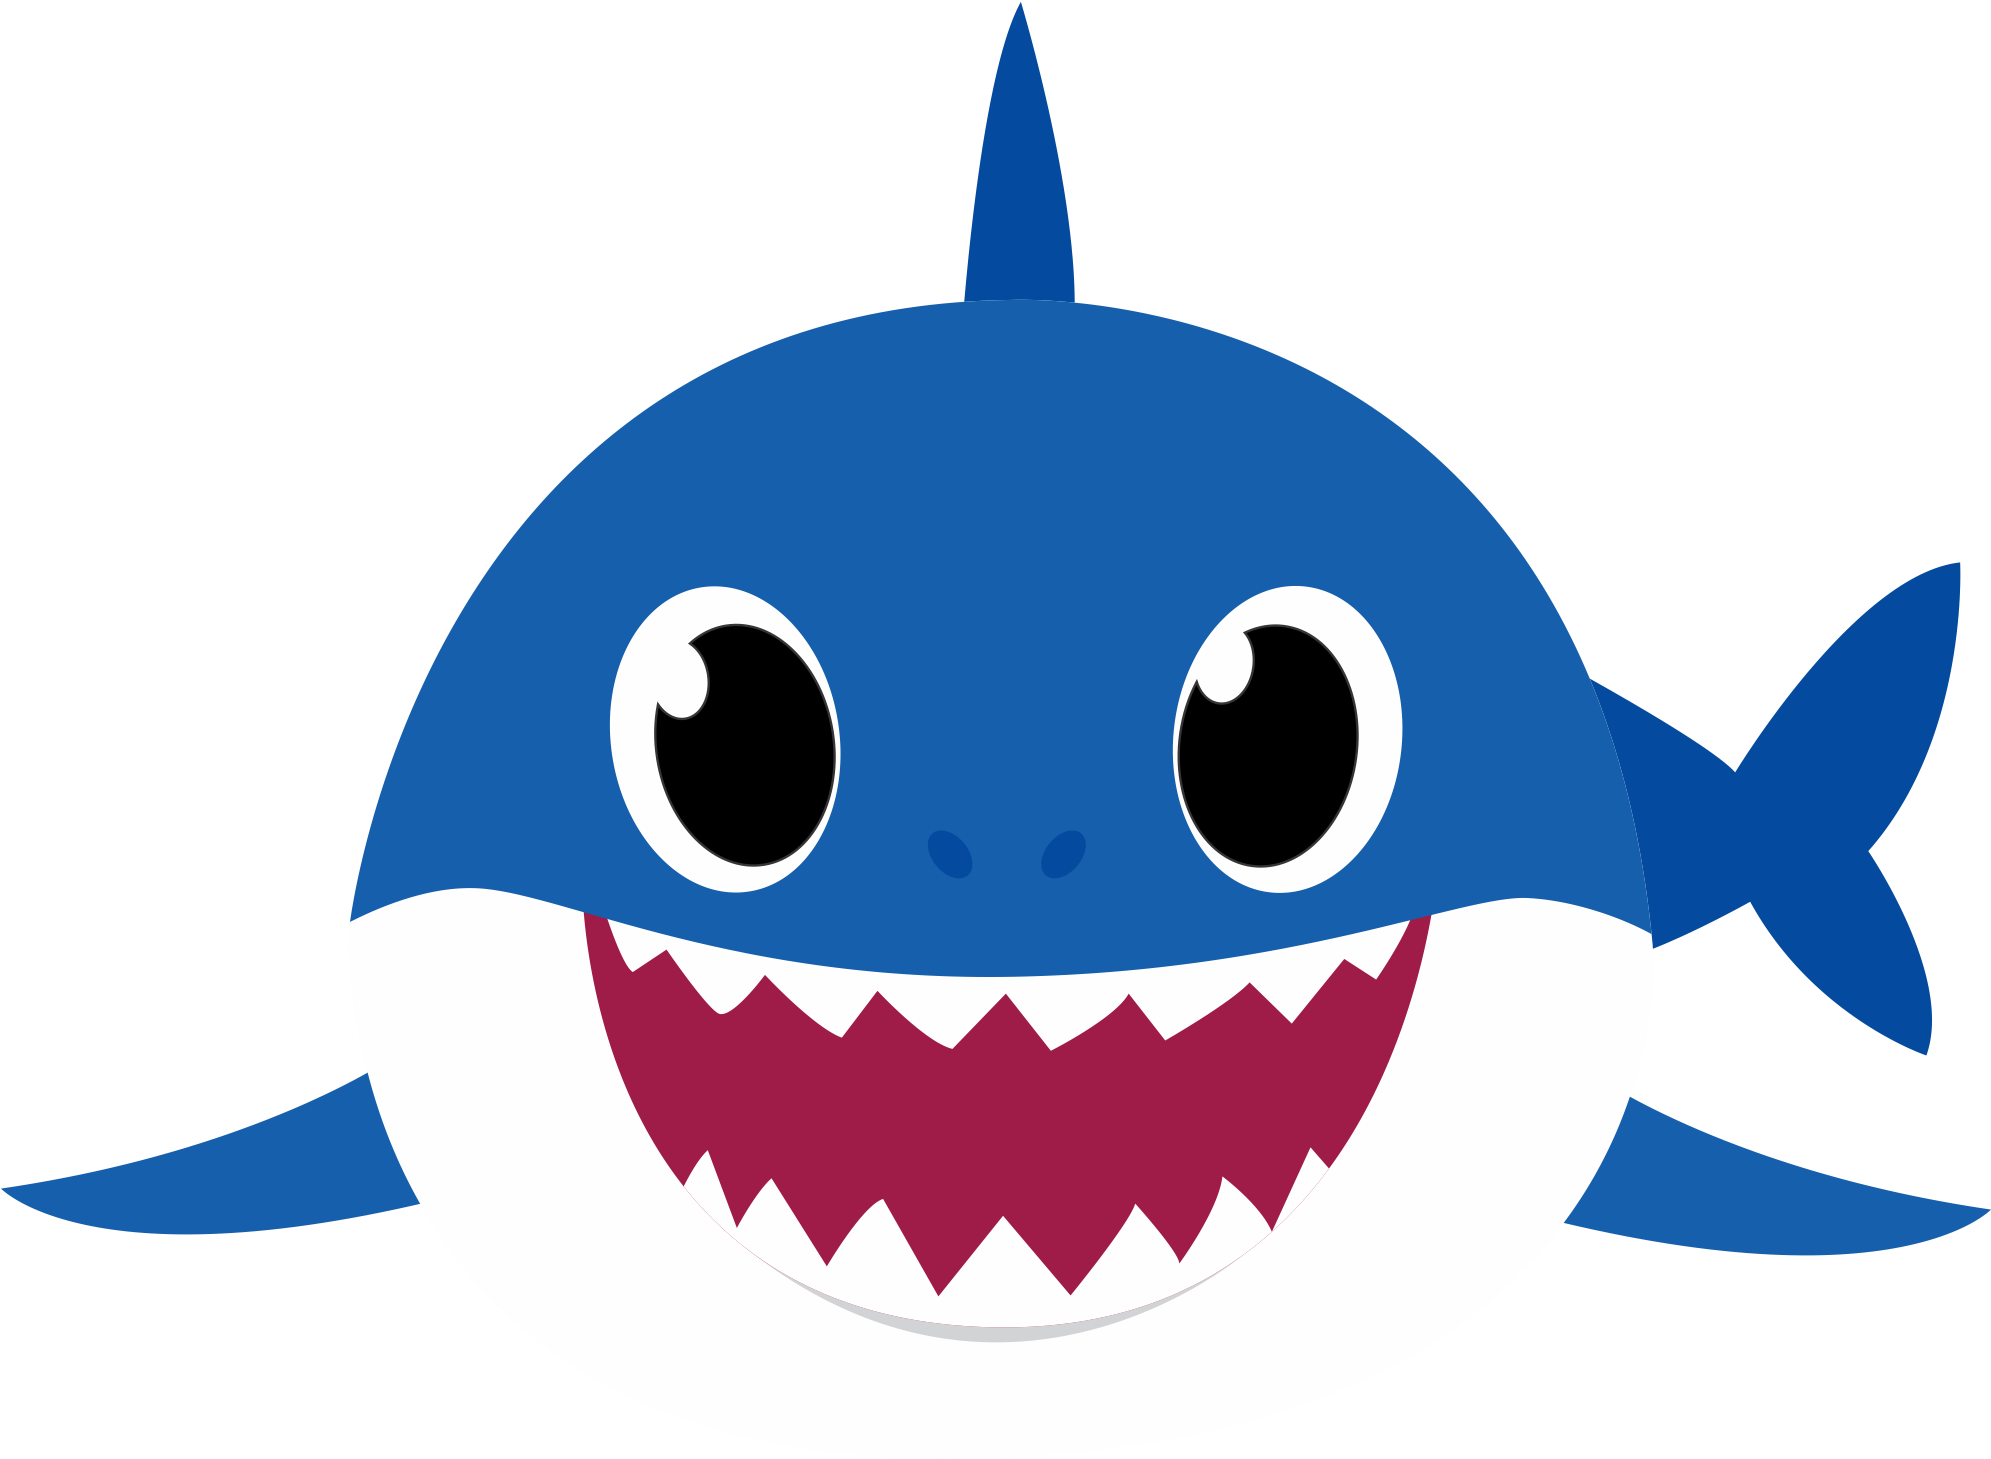 Baby Shark PNG images free download